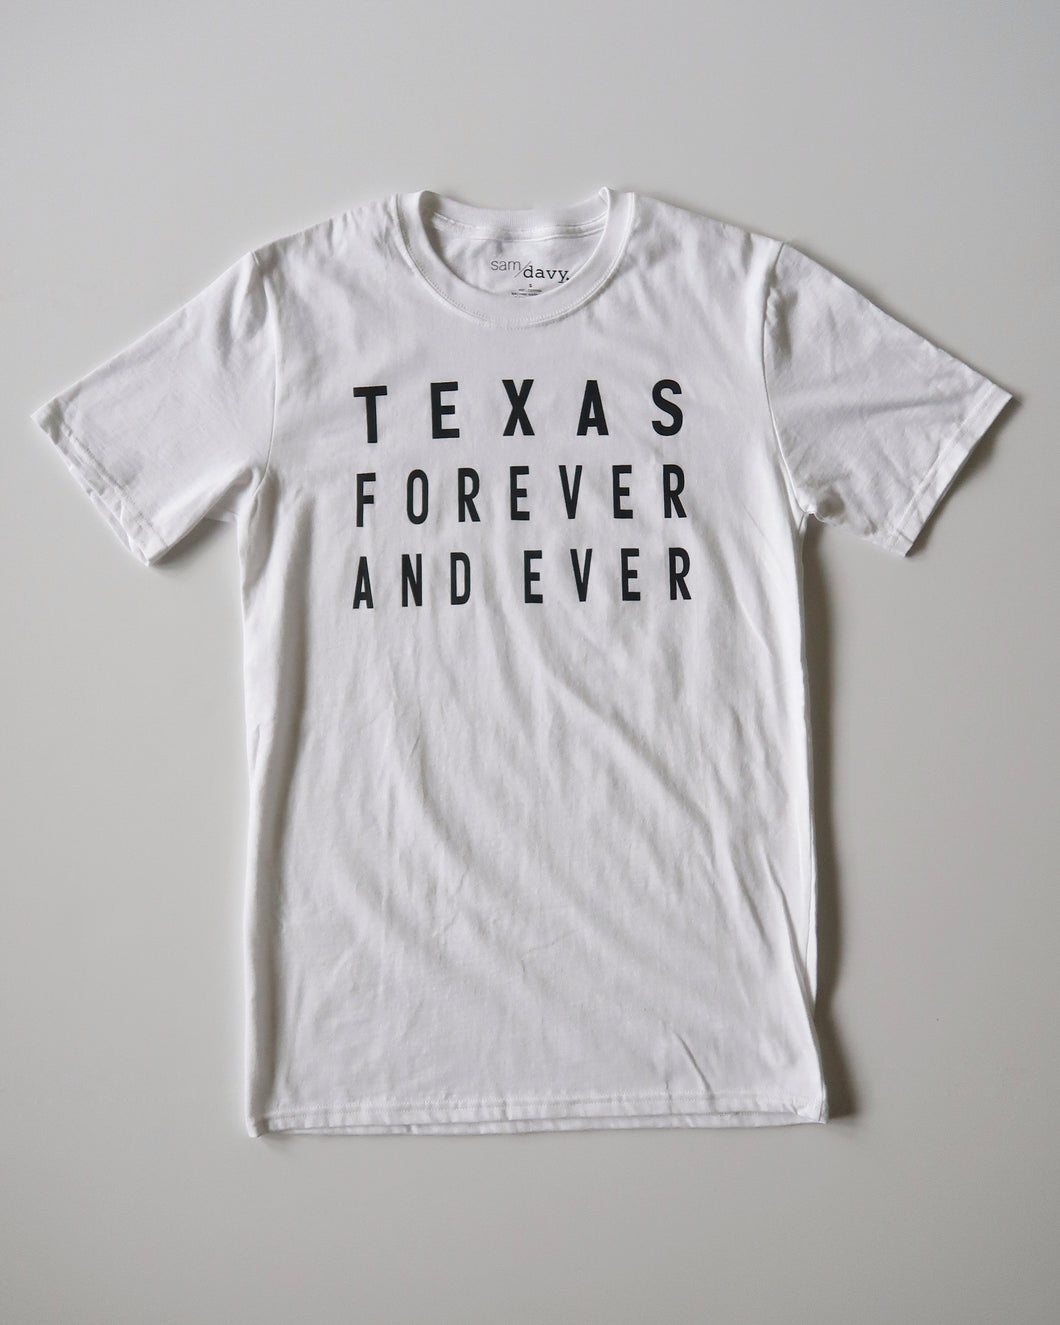 Texas Forever and Ever Tee (White/Black)